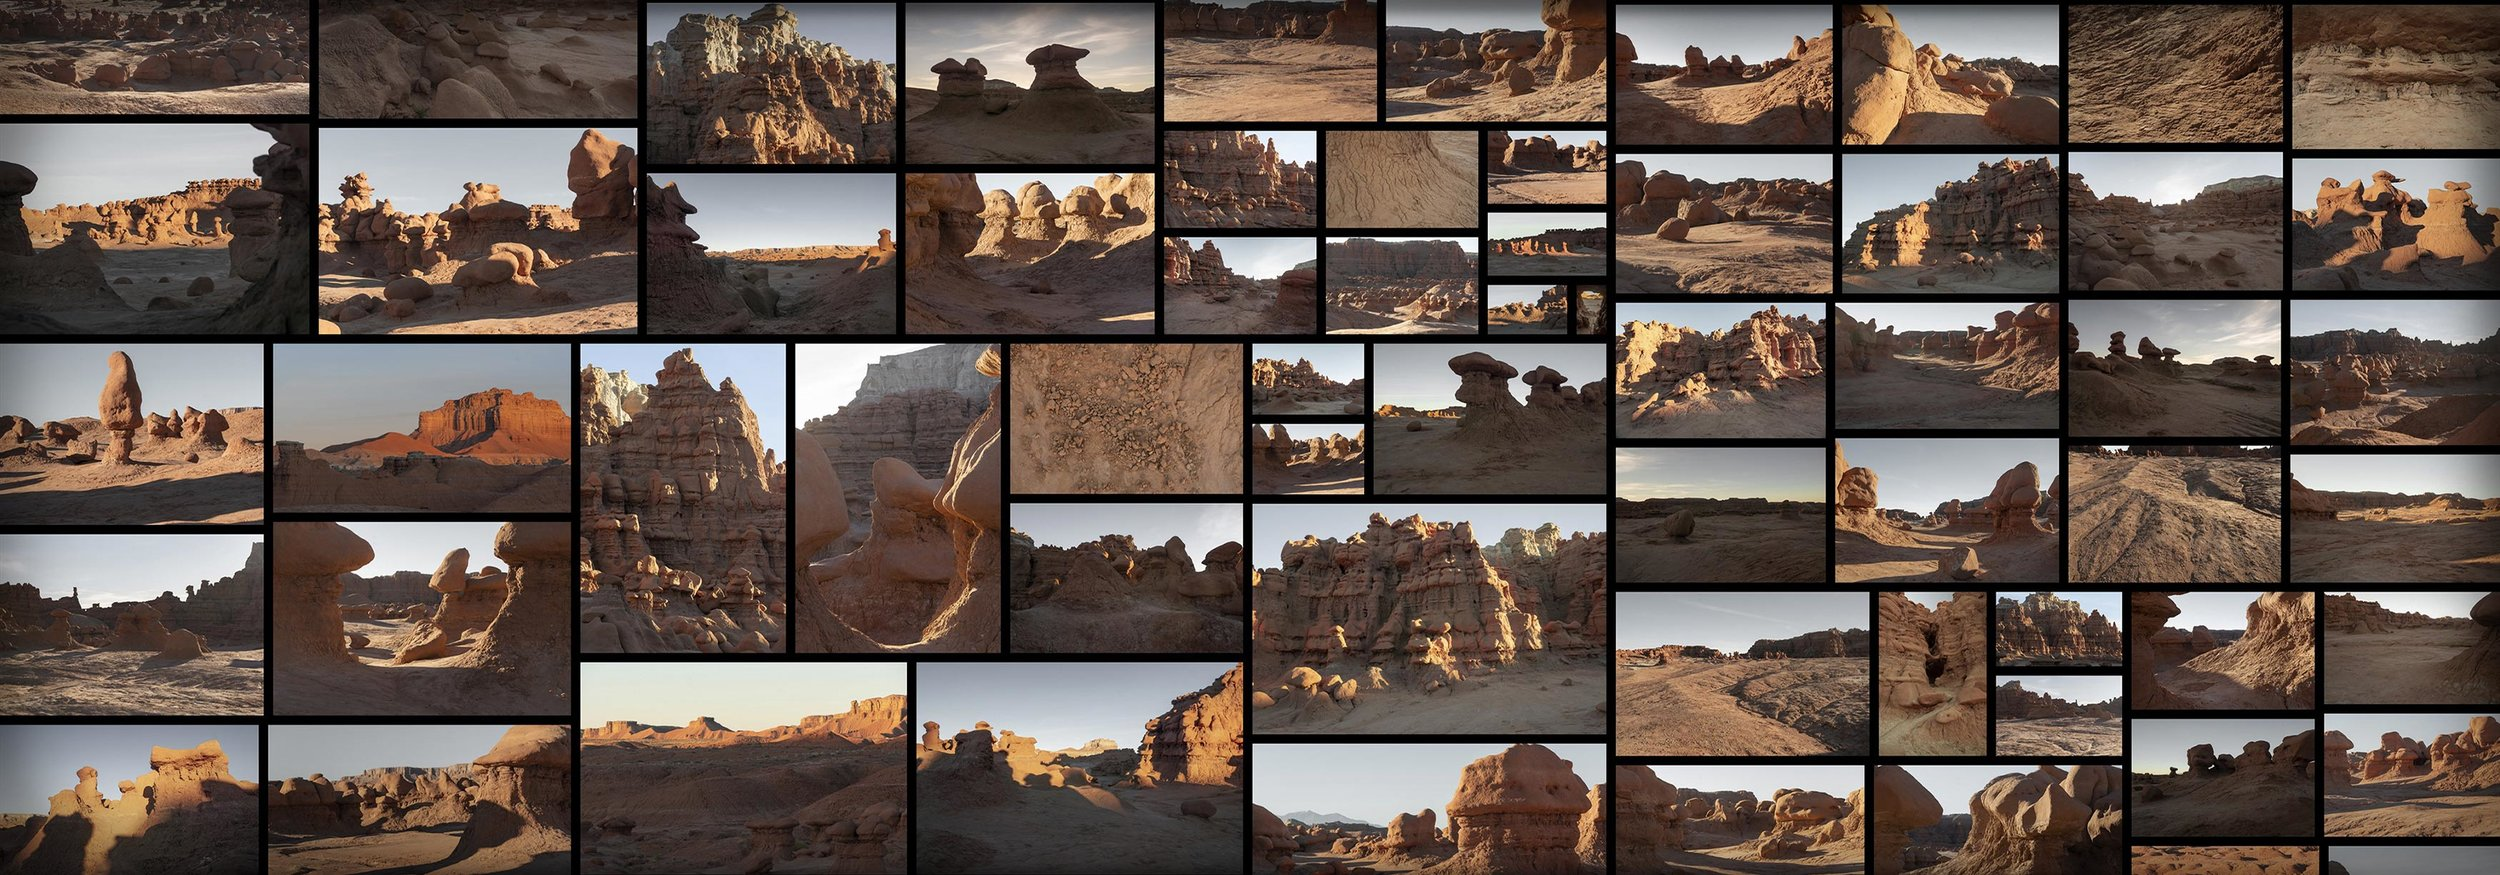 哥布林谷 Goblin Valley